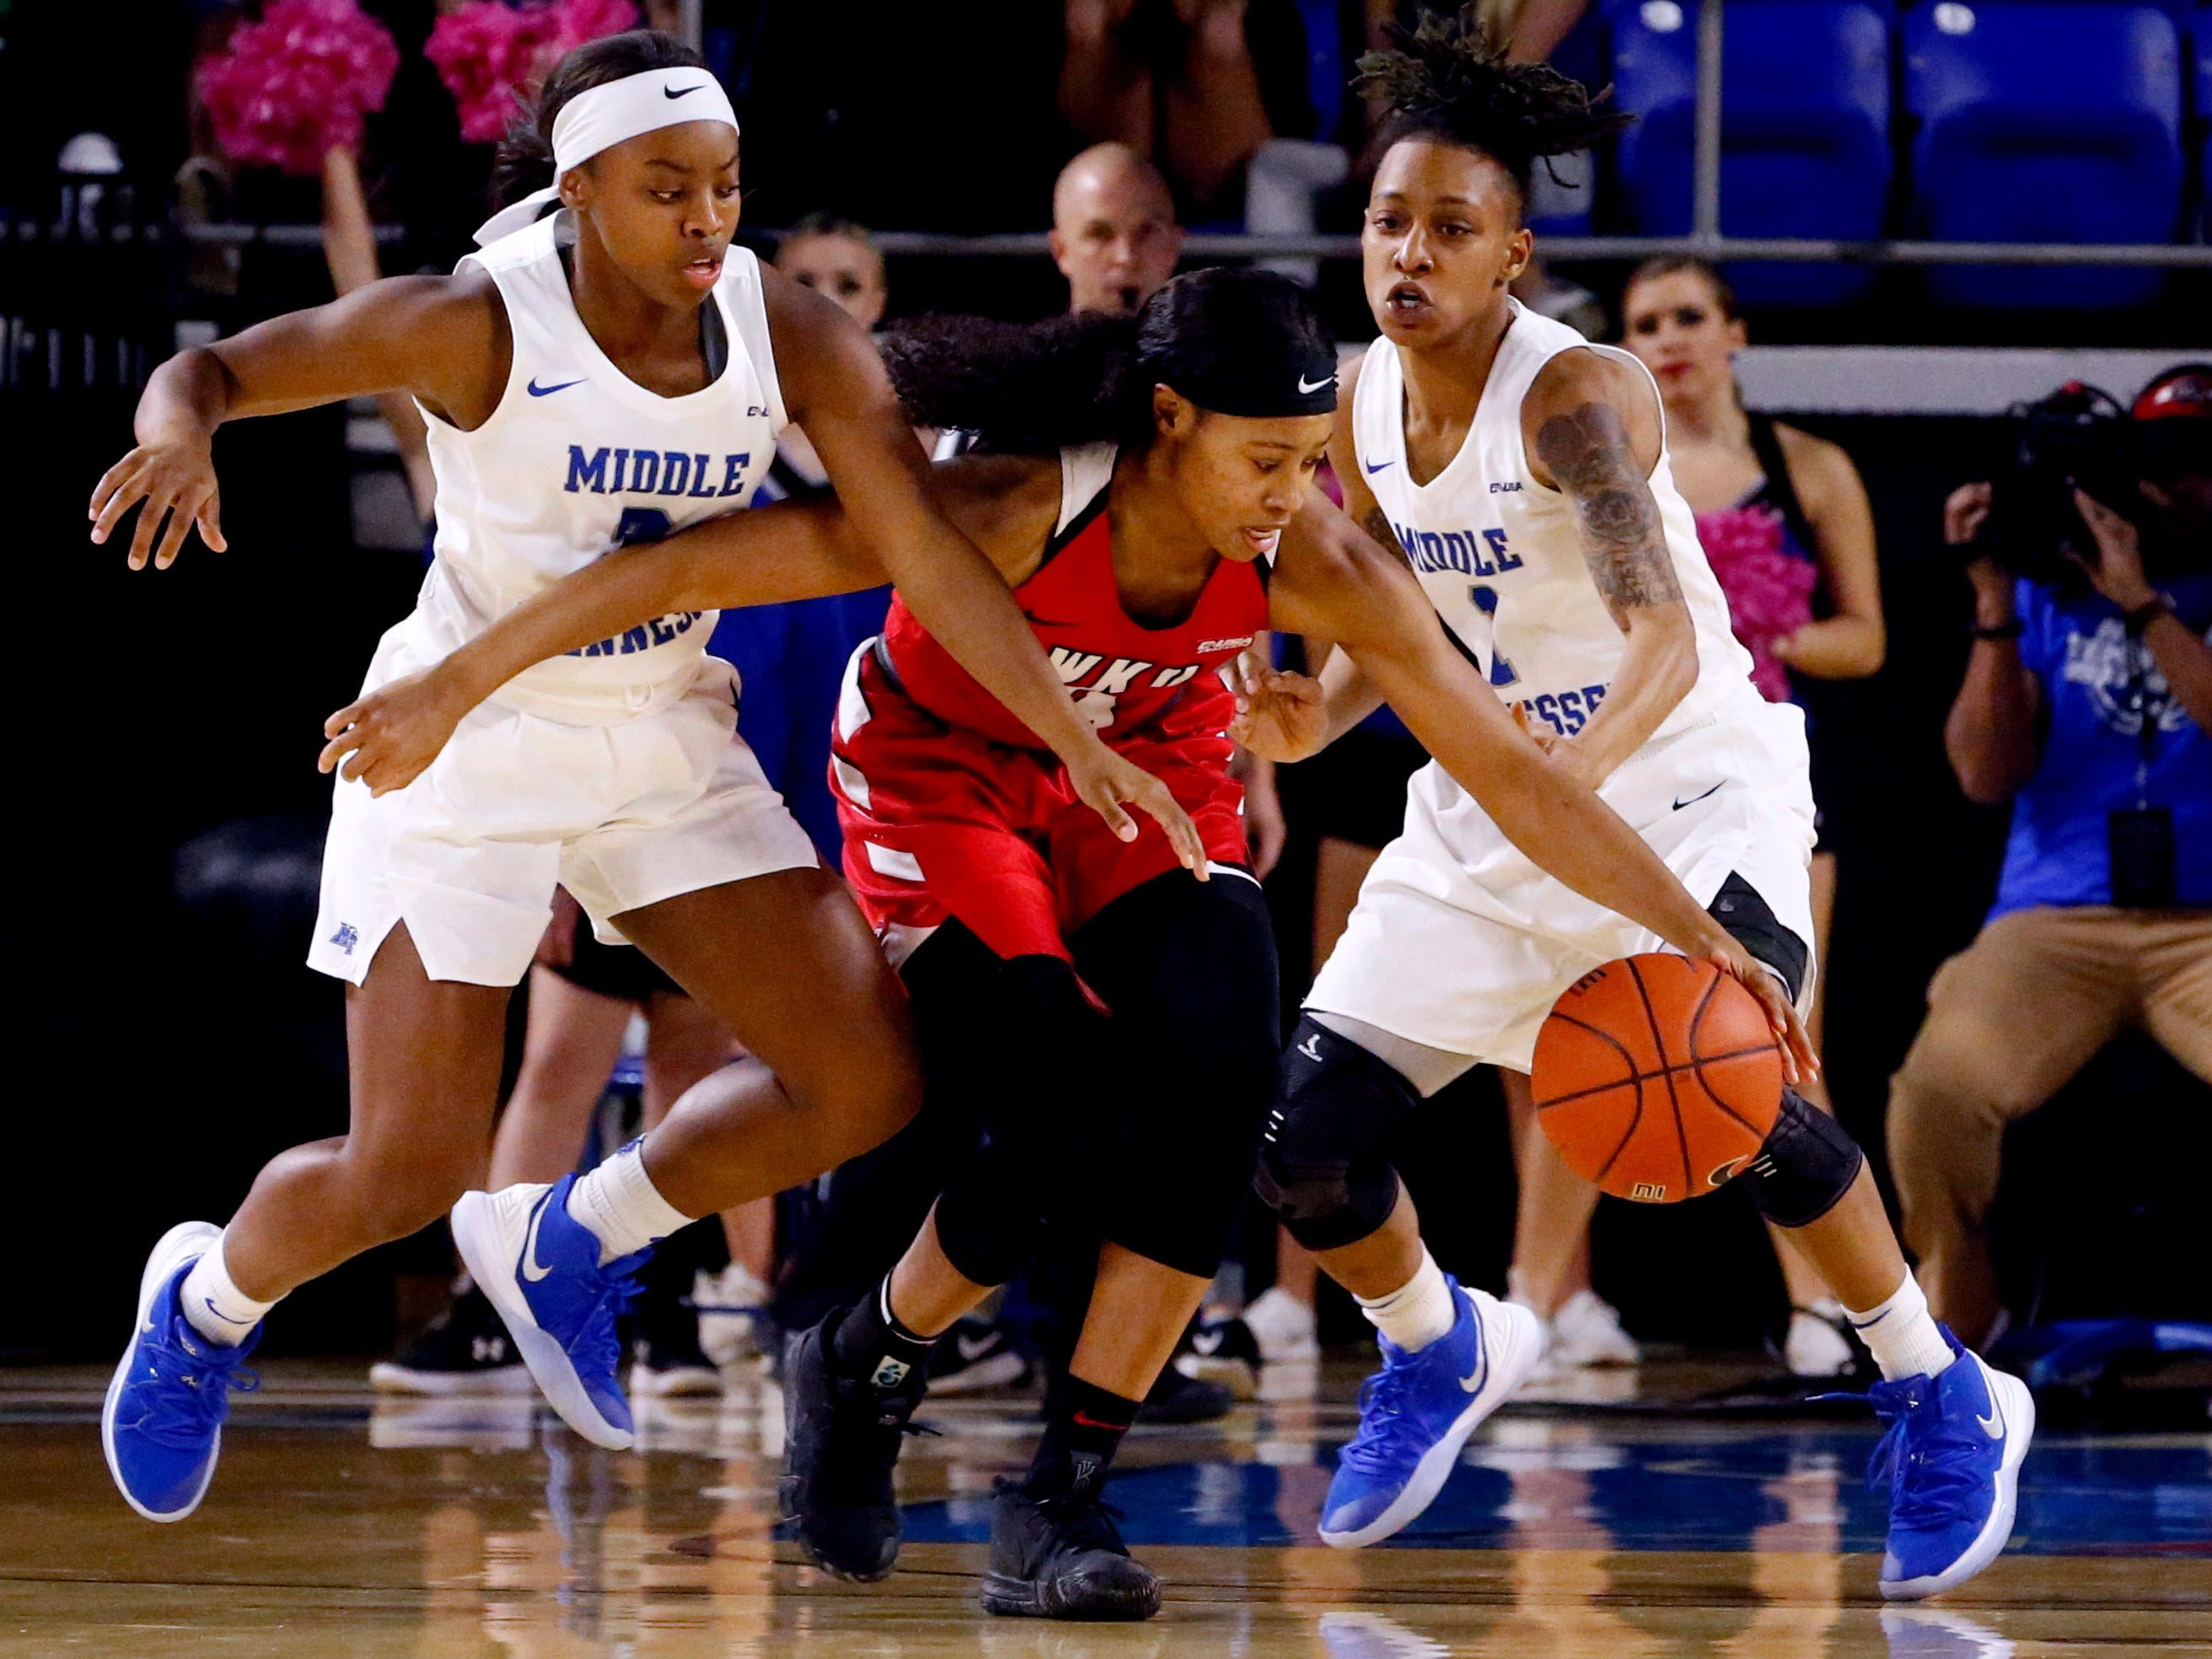 Western's forward Dee Givens (4) dribbles the ball as MTSU's guard Taylor Sutton (2) and MTSU's guard A'Queen Hayes (1) both try to steal the ball away on Thursday, Feb. 14, 2019.